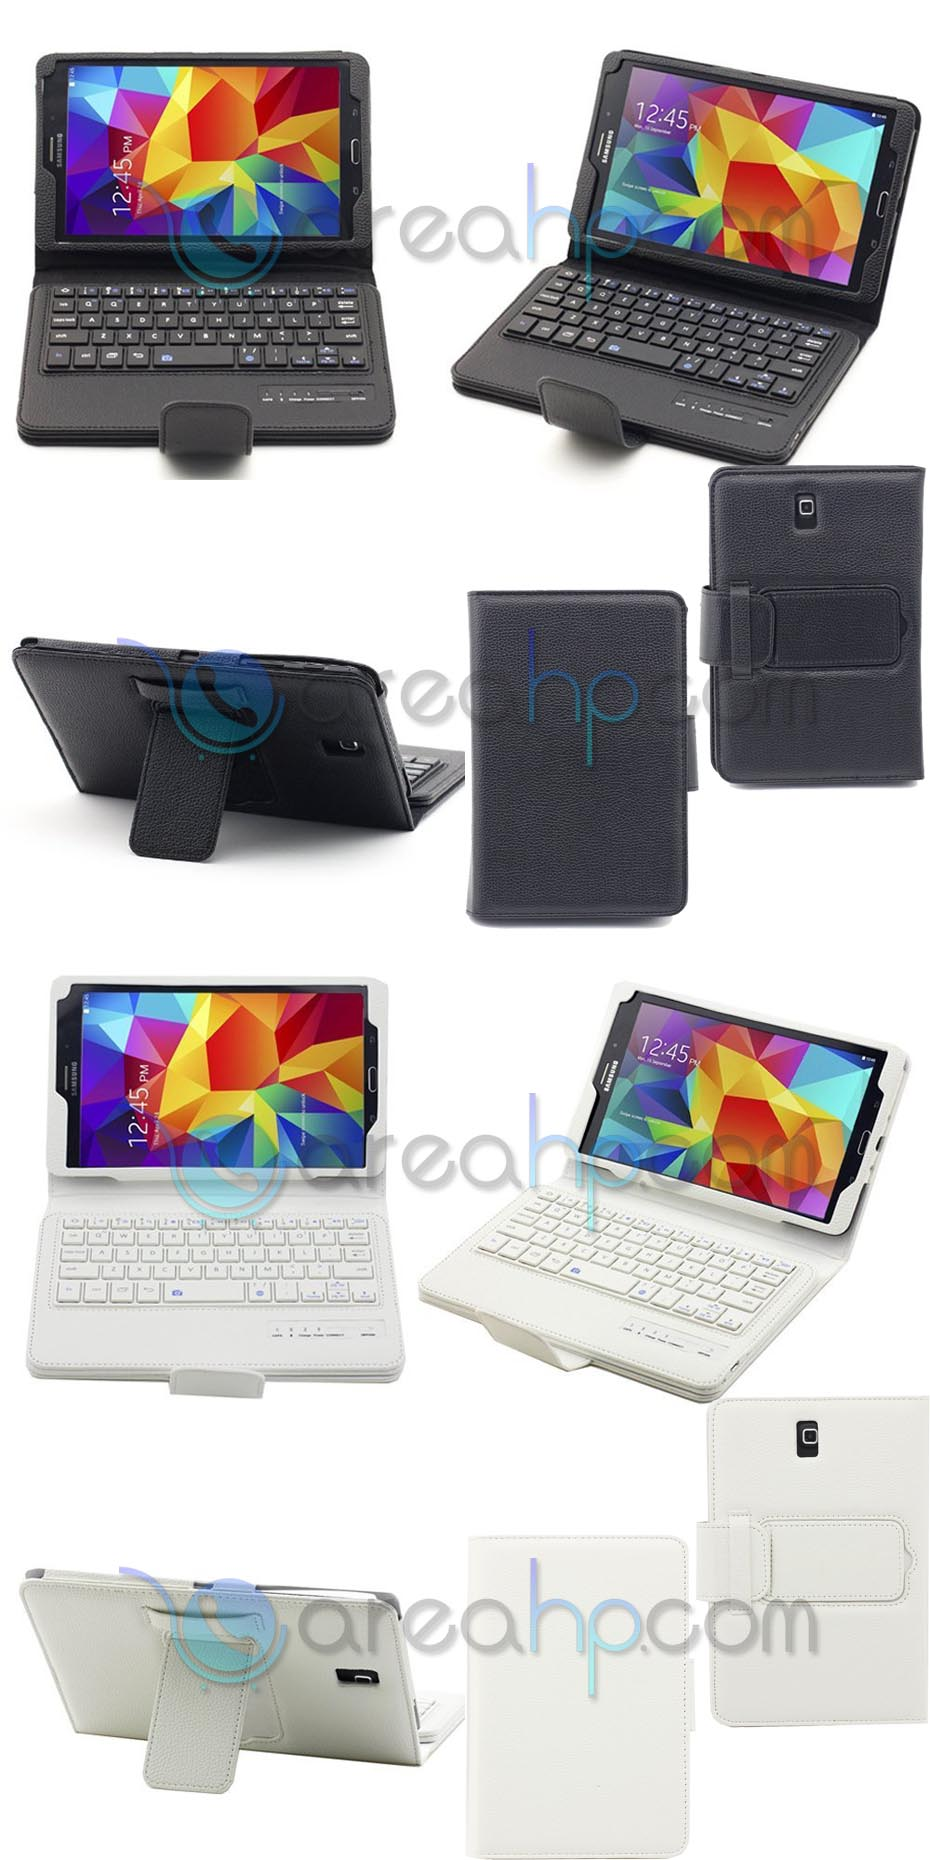 Keyboard Case for Samsung Galaxy Tab S 8.4 Overview